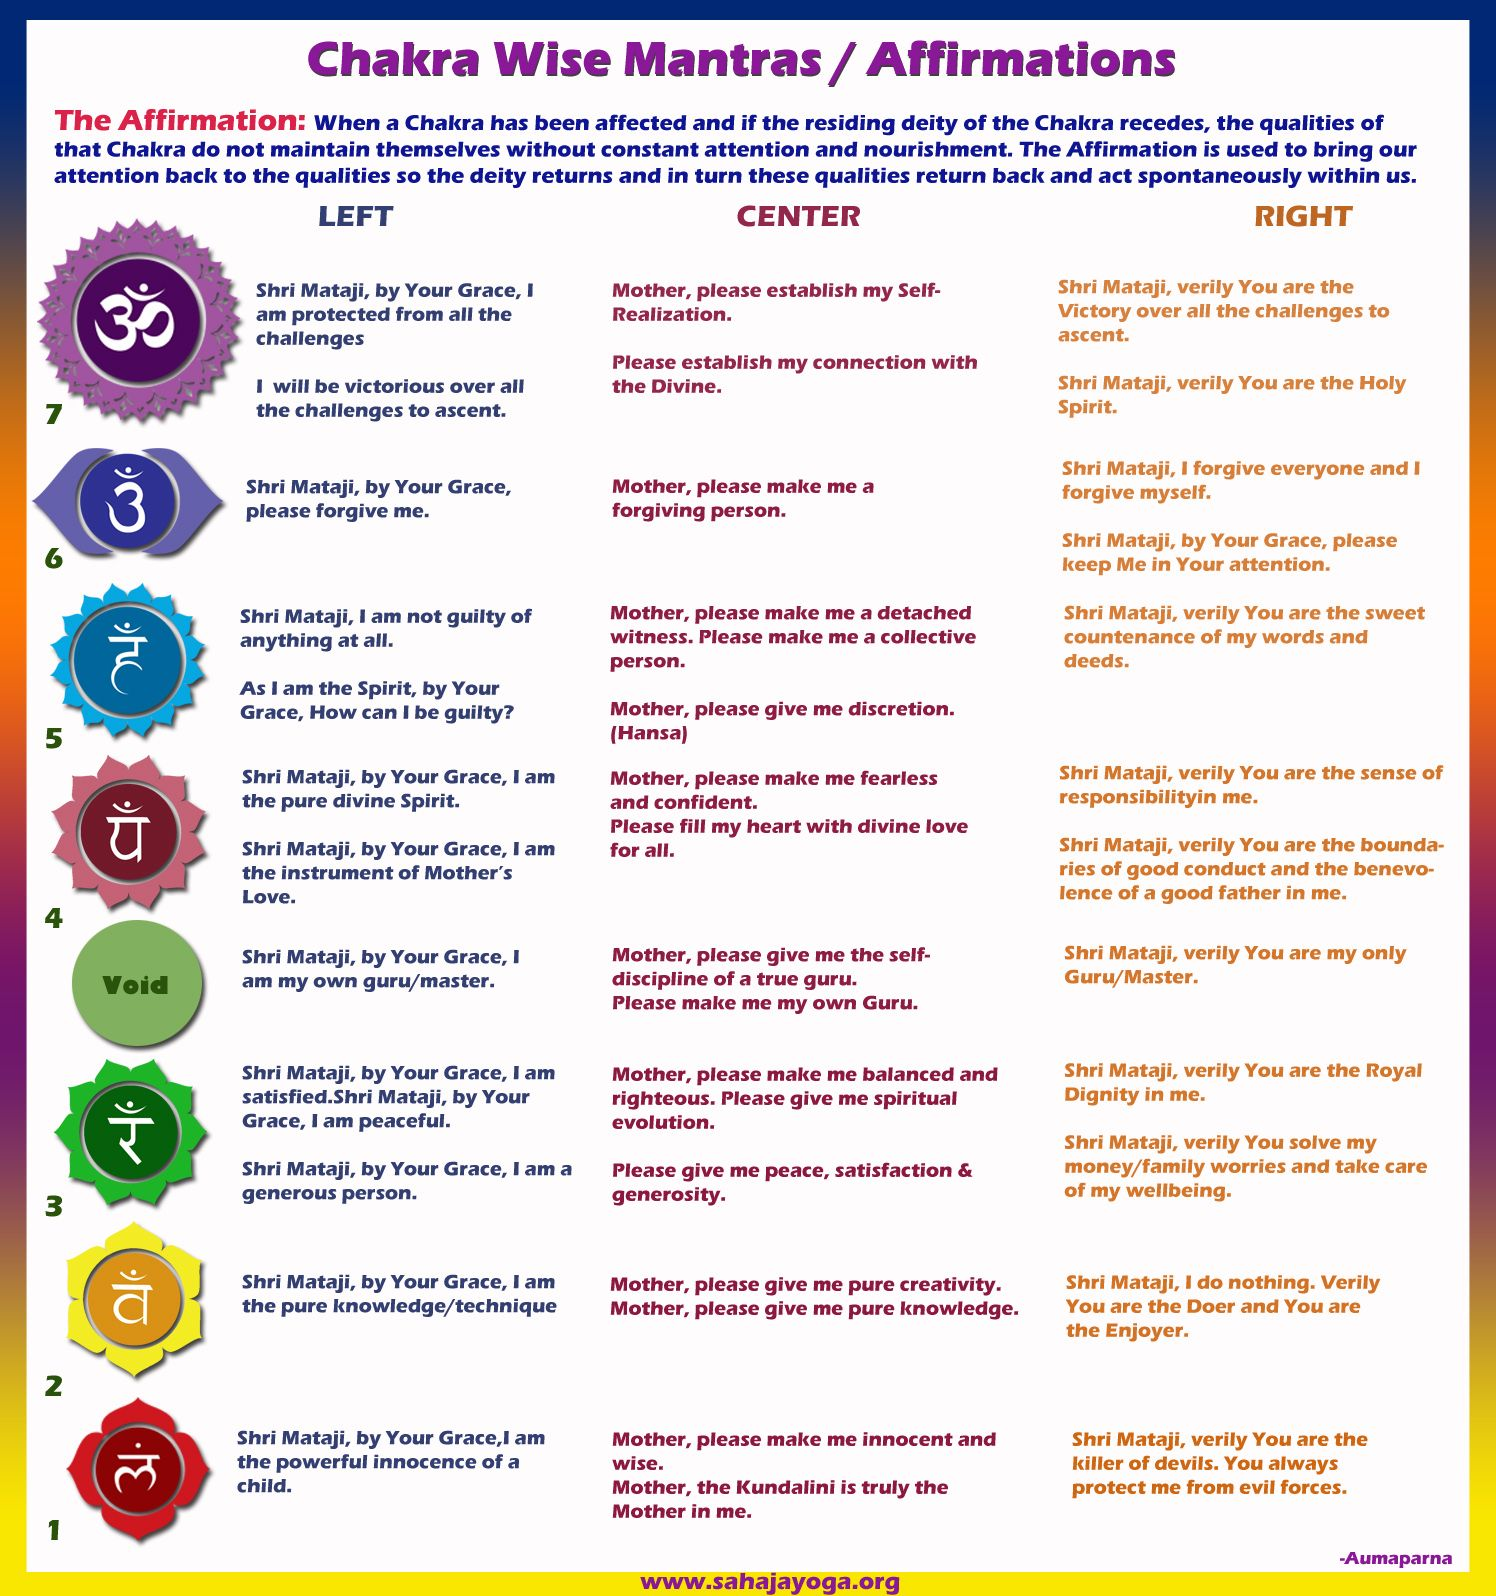 Why Affirmations Or Mantras When A Chakra Has Been Affected And If The Residing Deity Of The Chakra Recedes Sahaja Yoga Chakra Yoga Sahaja Yoga Meditation